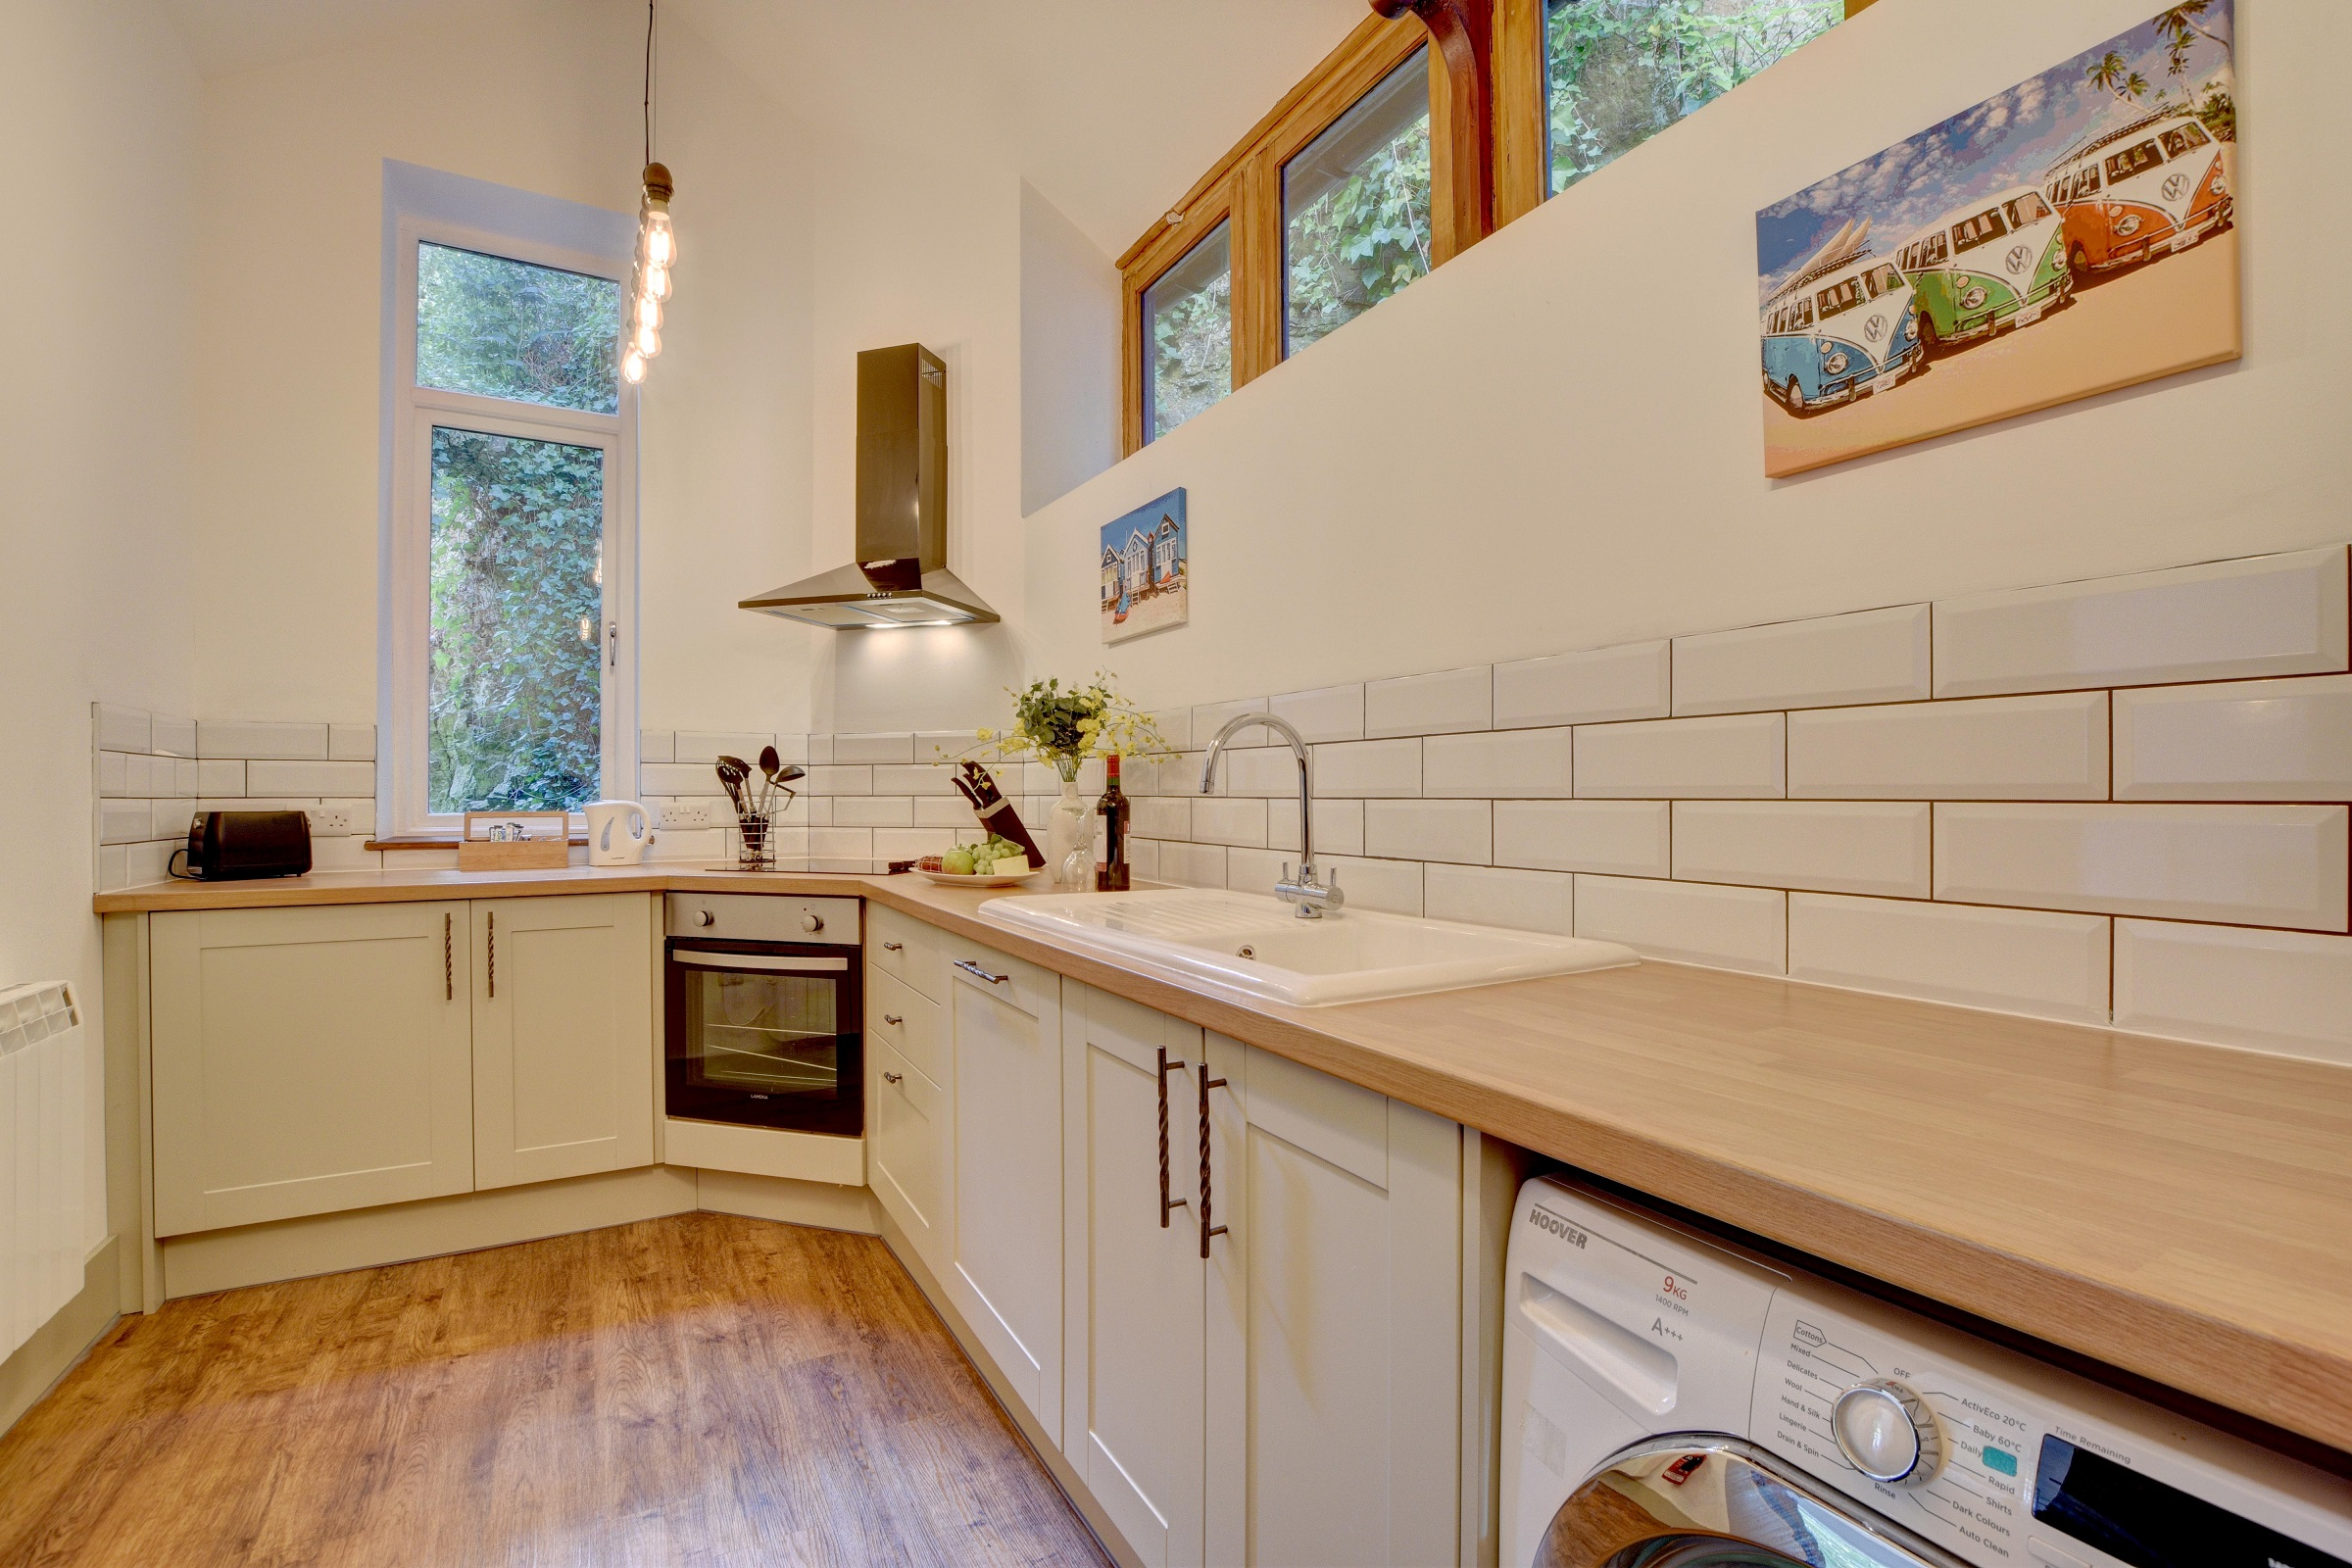 Baronets-Quarters-Kitchen-with-Washing-Machine-and-Dishwasher